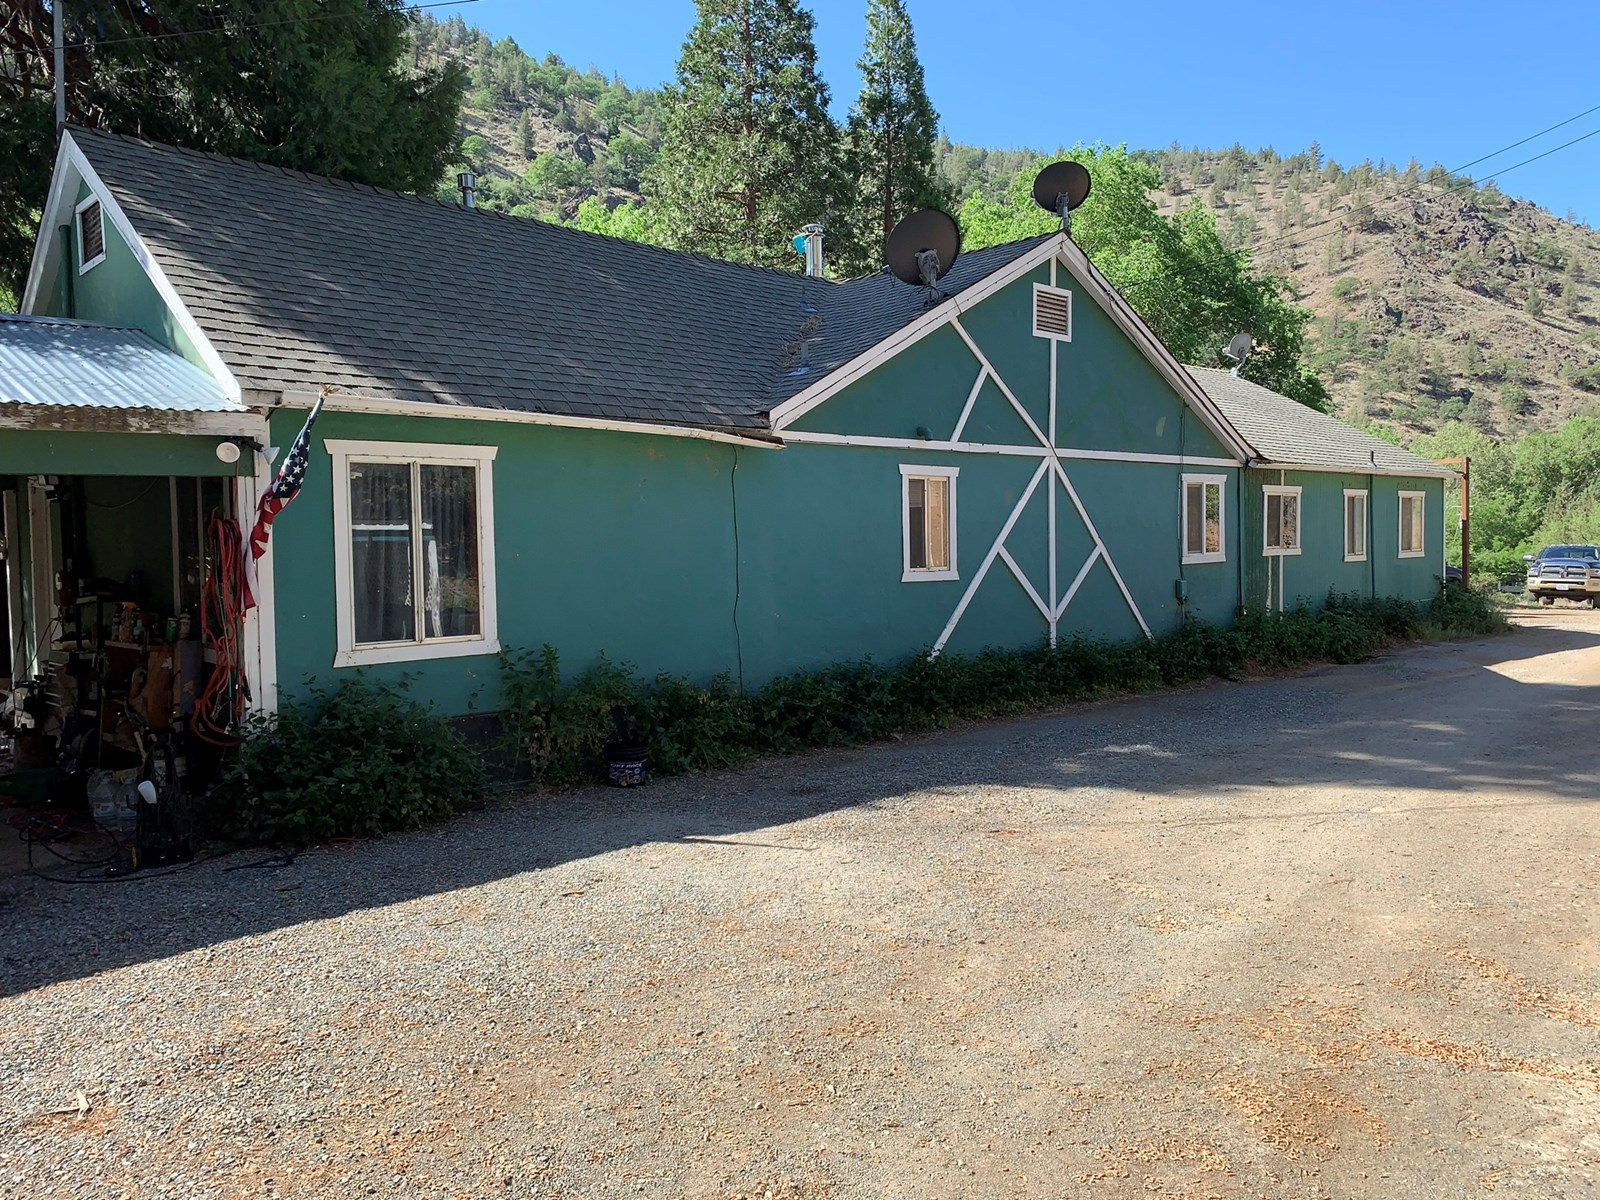 Investment Property for Sale in Siskiyou County